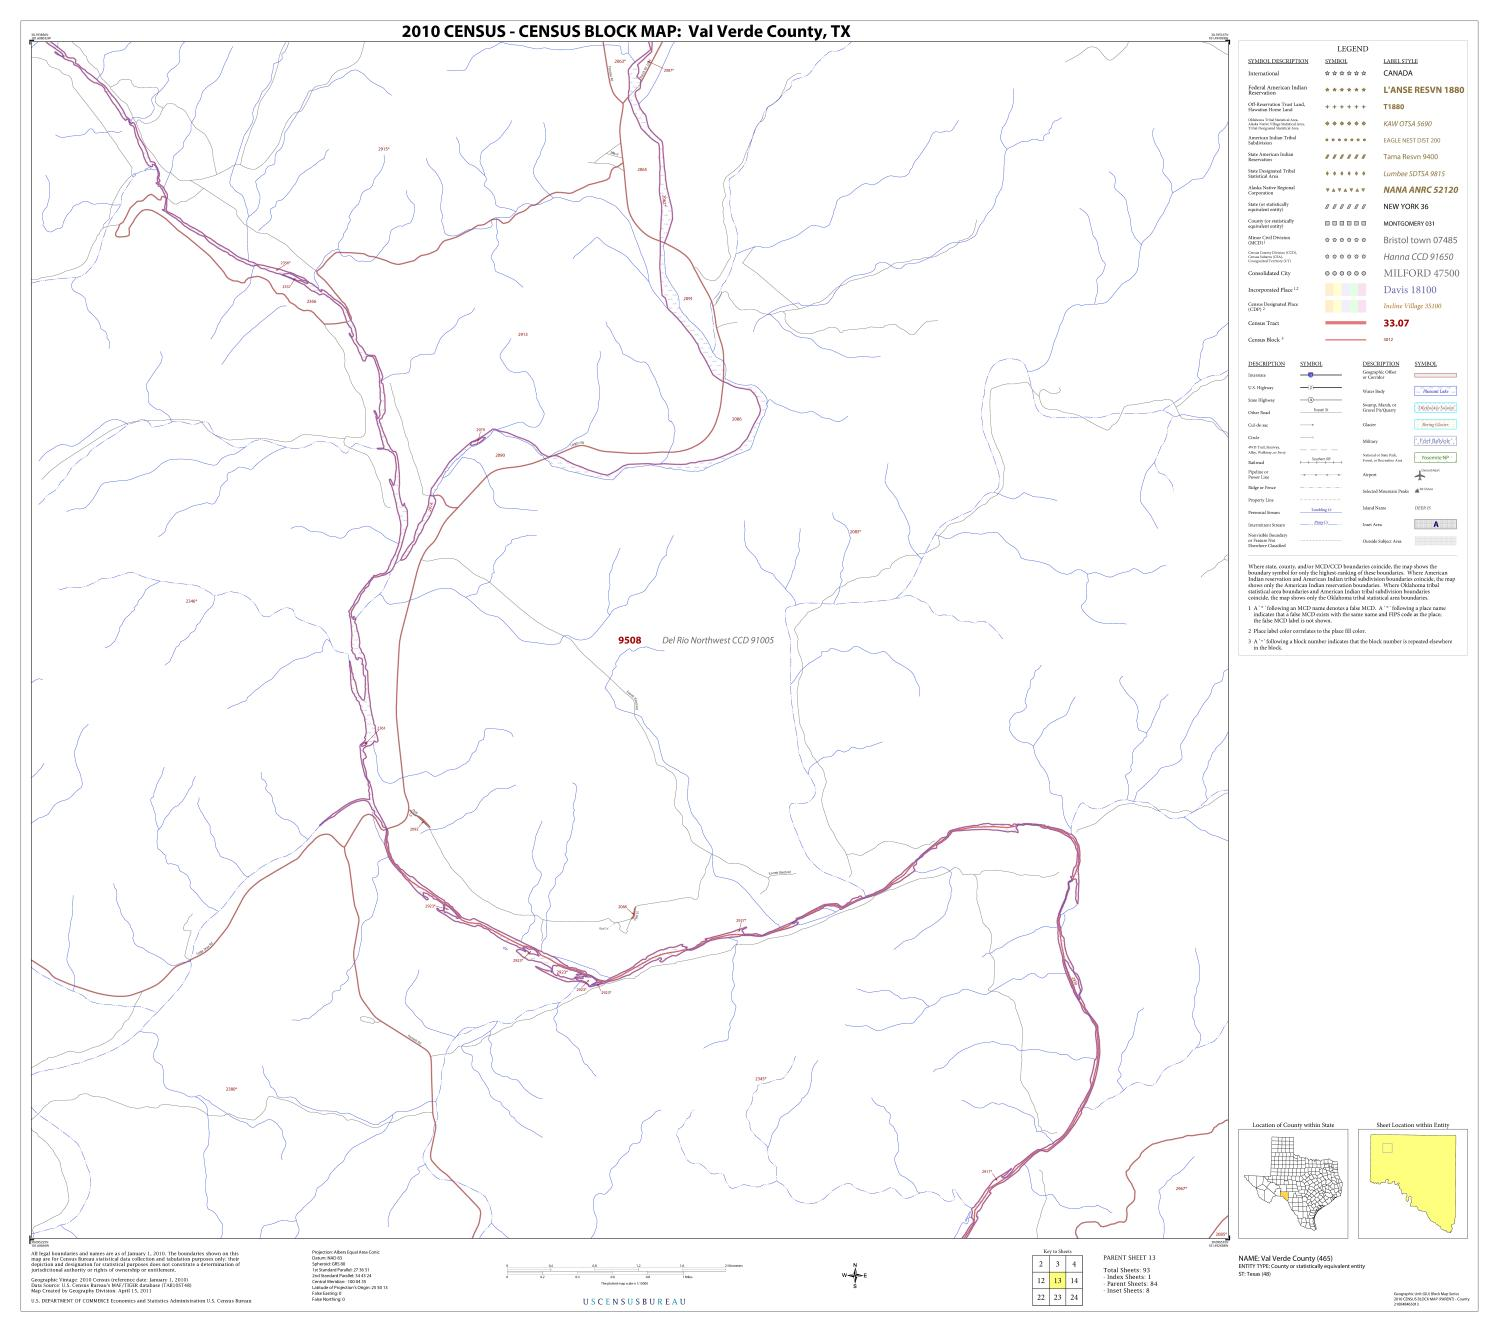 2010 Census County Block Map: Val Verde County, Block 13                                                                                                      [Sequence #]: 1 of 1